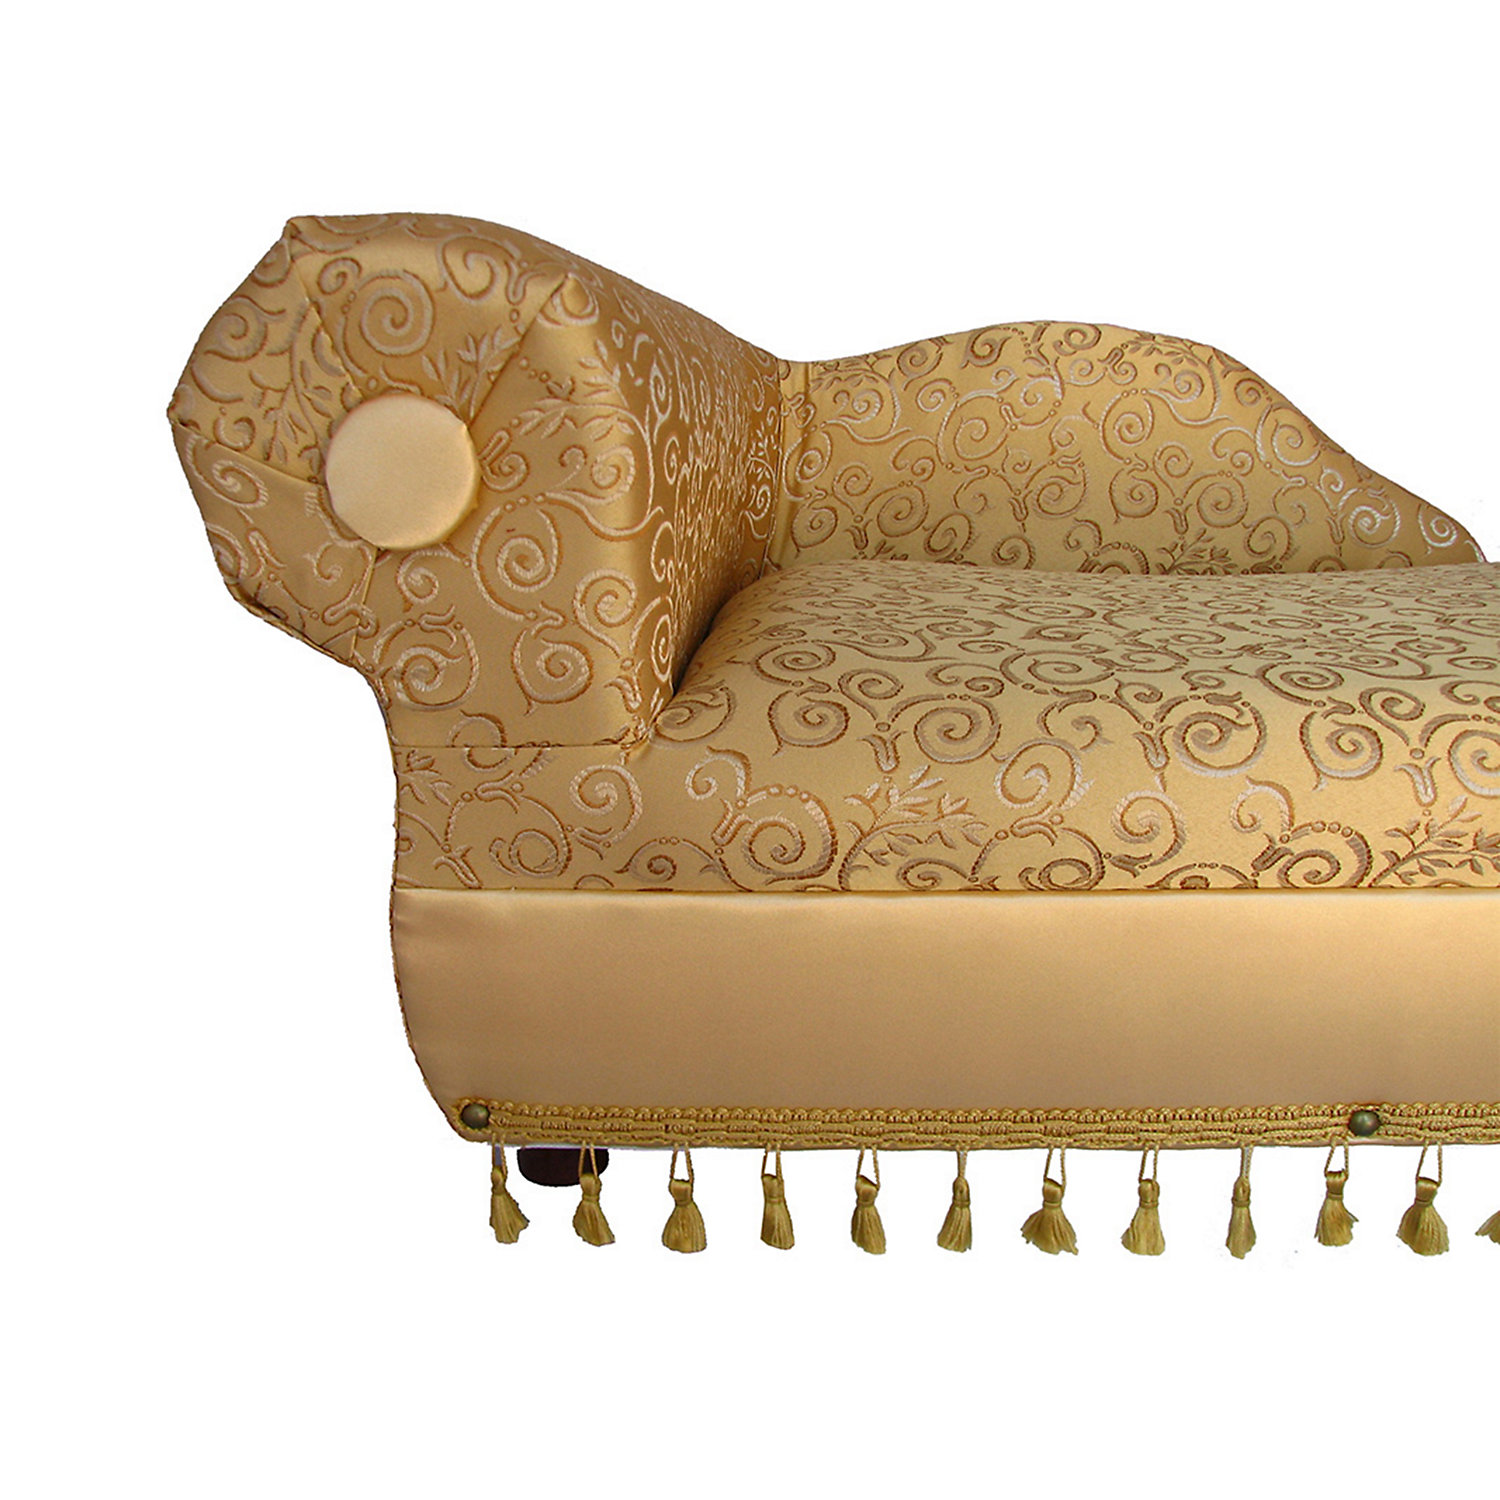 Fantasy Furniture Cleopatra Chaise GoldIvory Pattern 19.5 L X 16 W X 13 H Small Yellow  White